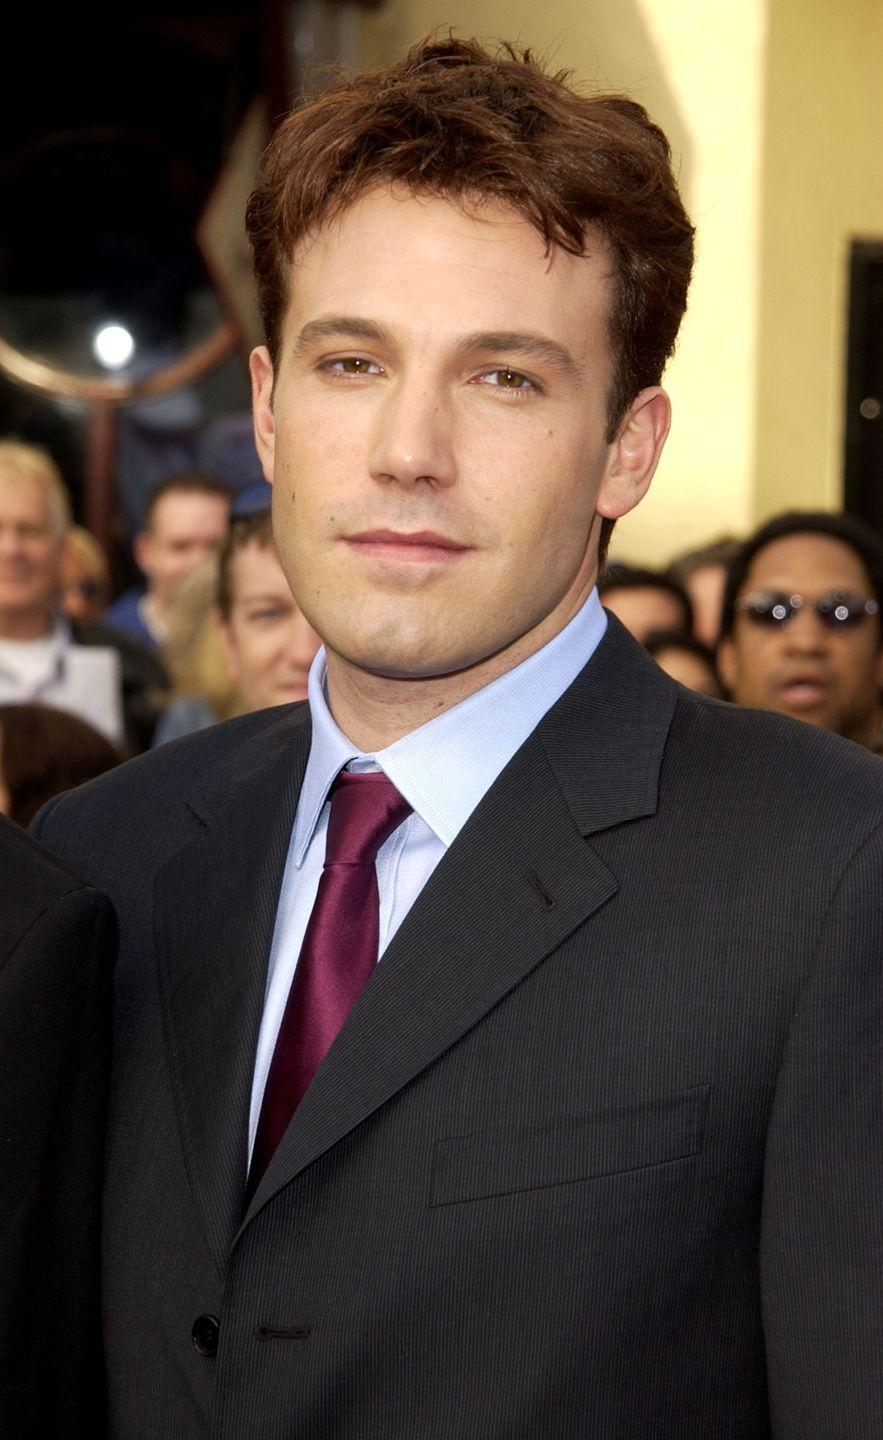 <p>Ben Affleck hasn't mixed up his hairstyle much since his <em>Good Will Hunting </em>days. </p>